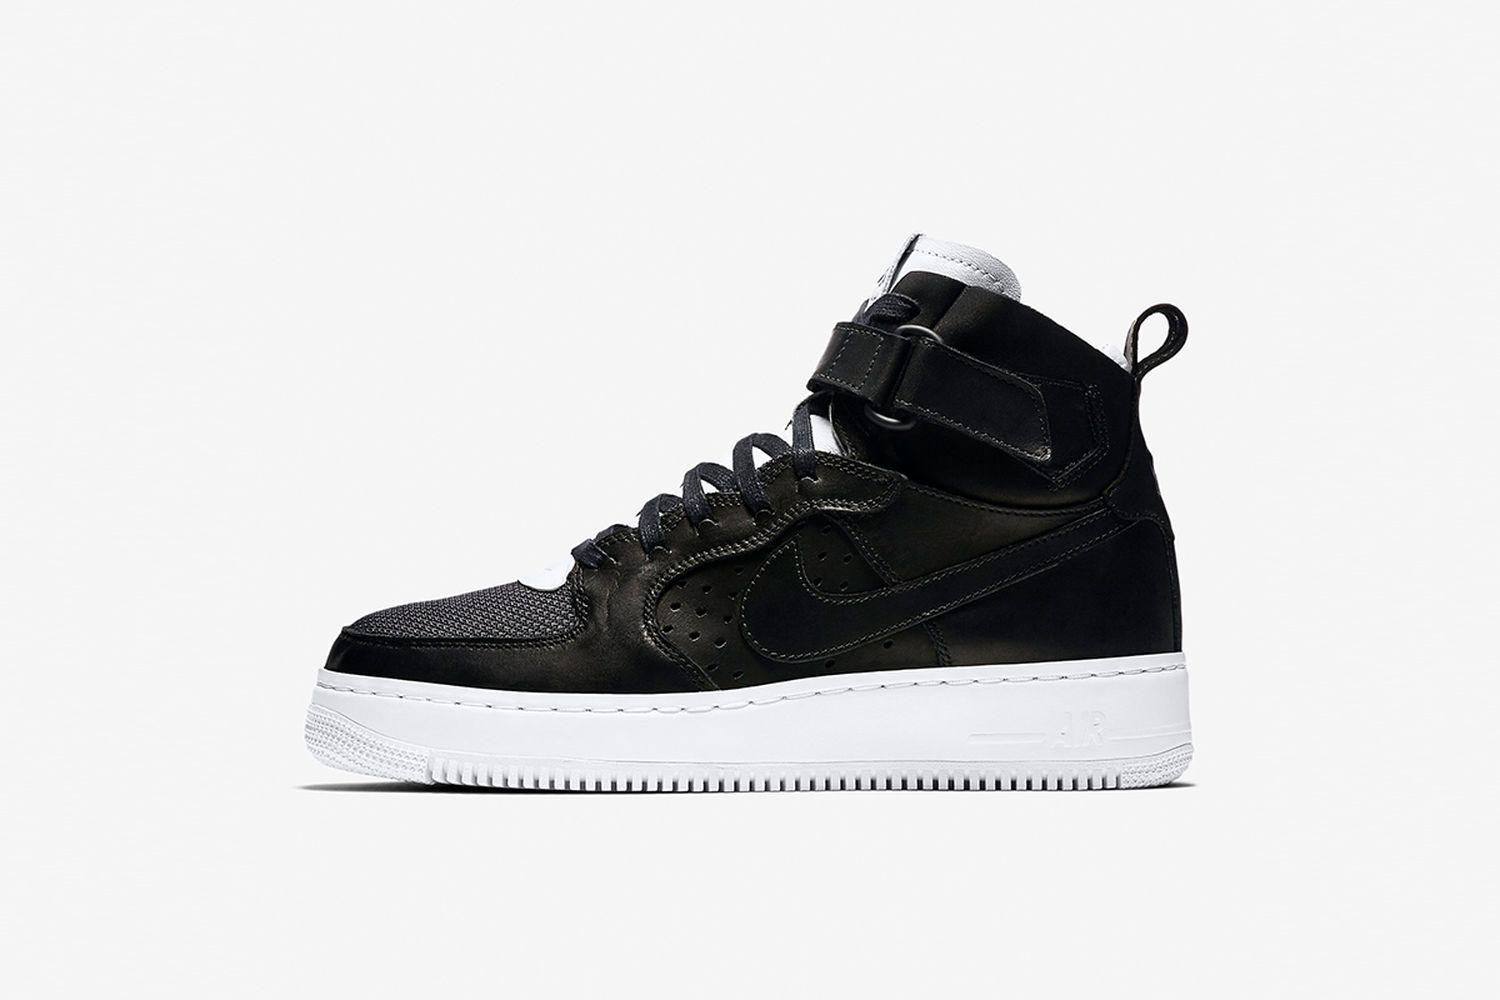 Air Force 1 High CMFT CT SP